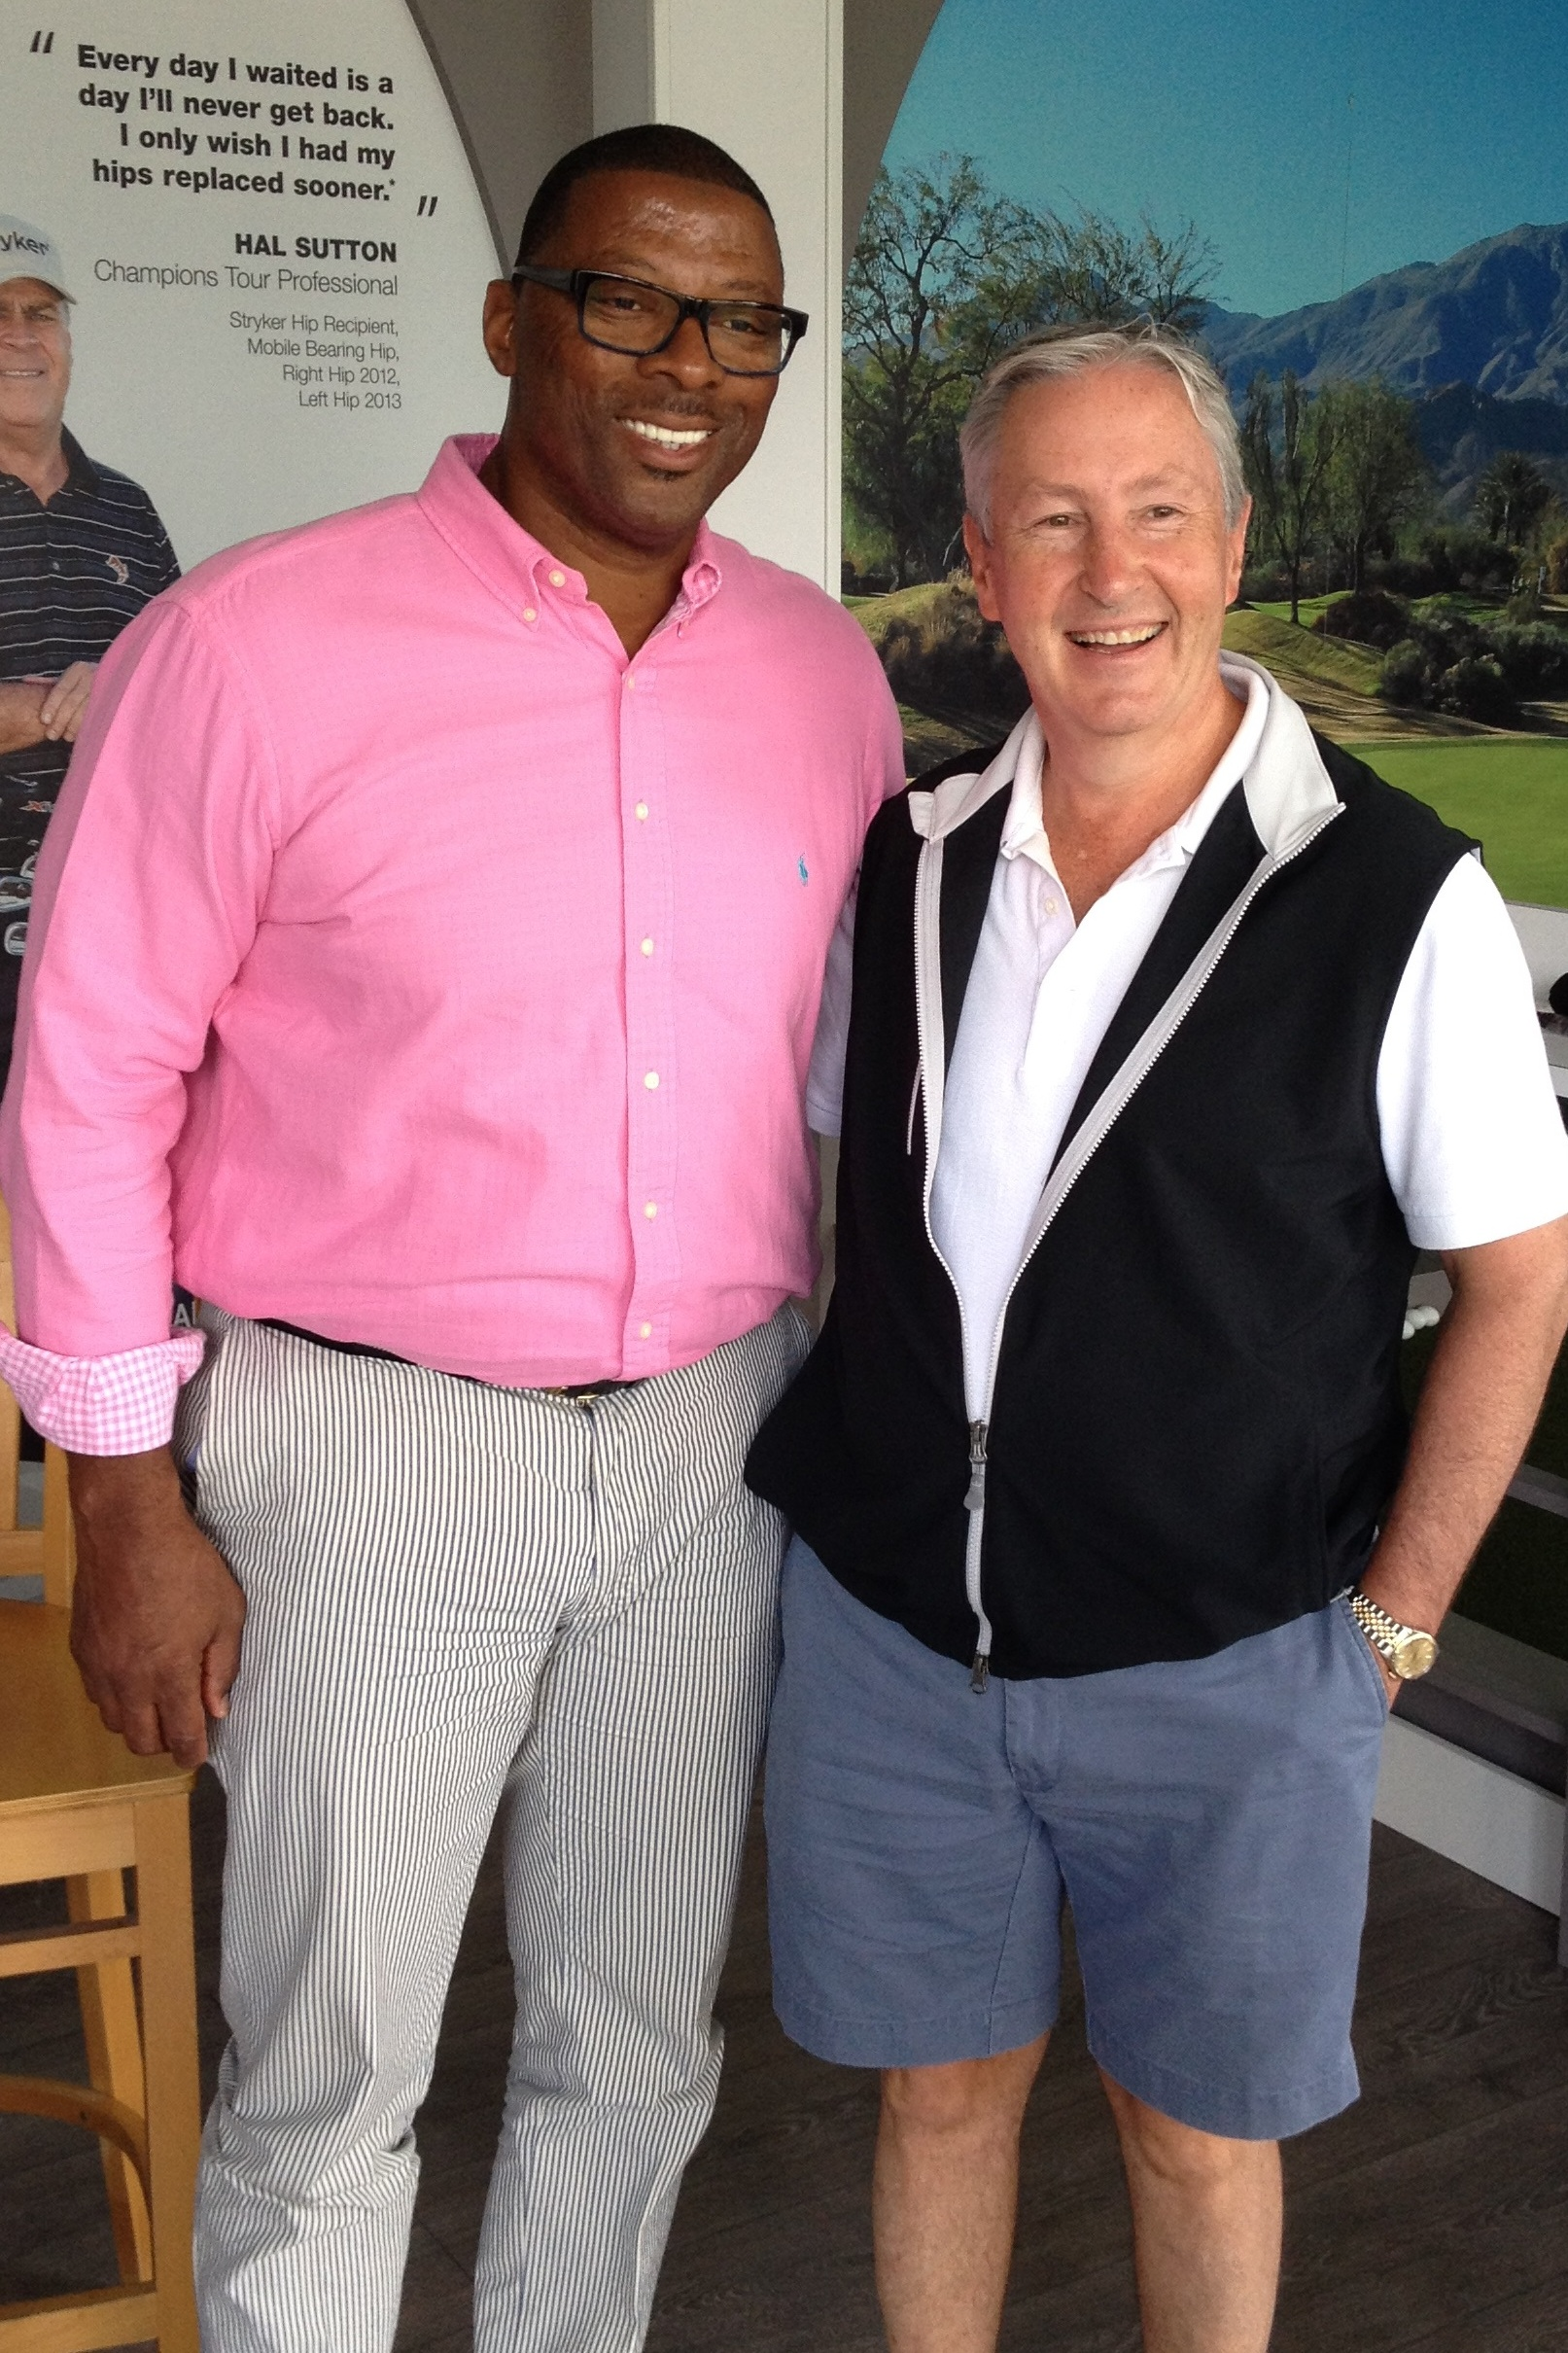 Giants legend Carl Banks, left, meets Harrison physician Steven Zelicof last week at a PGA Tour event in New Jersey.